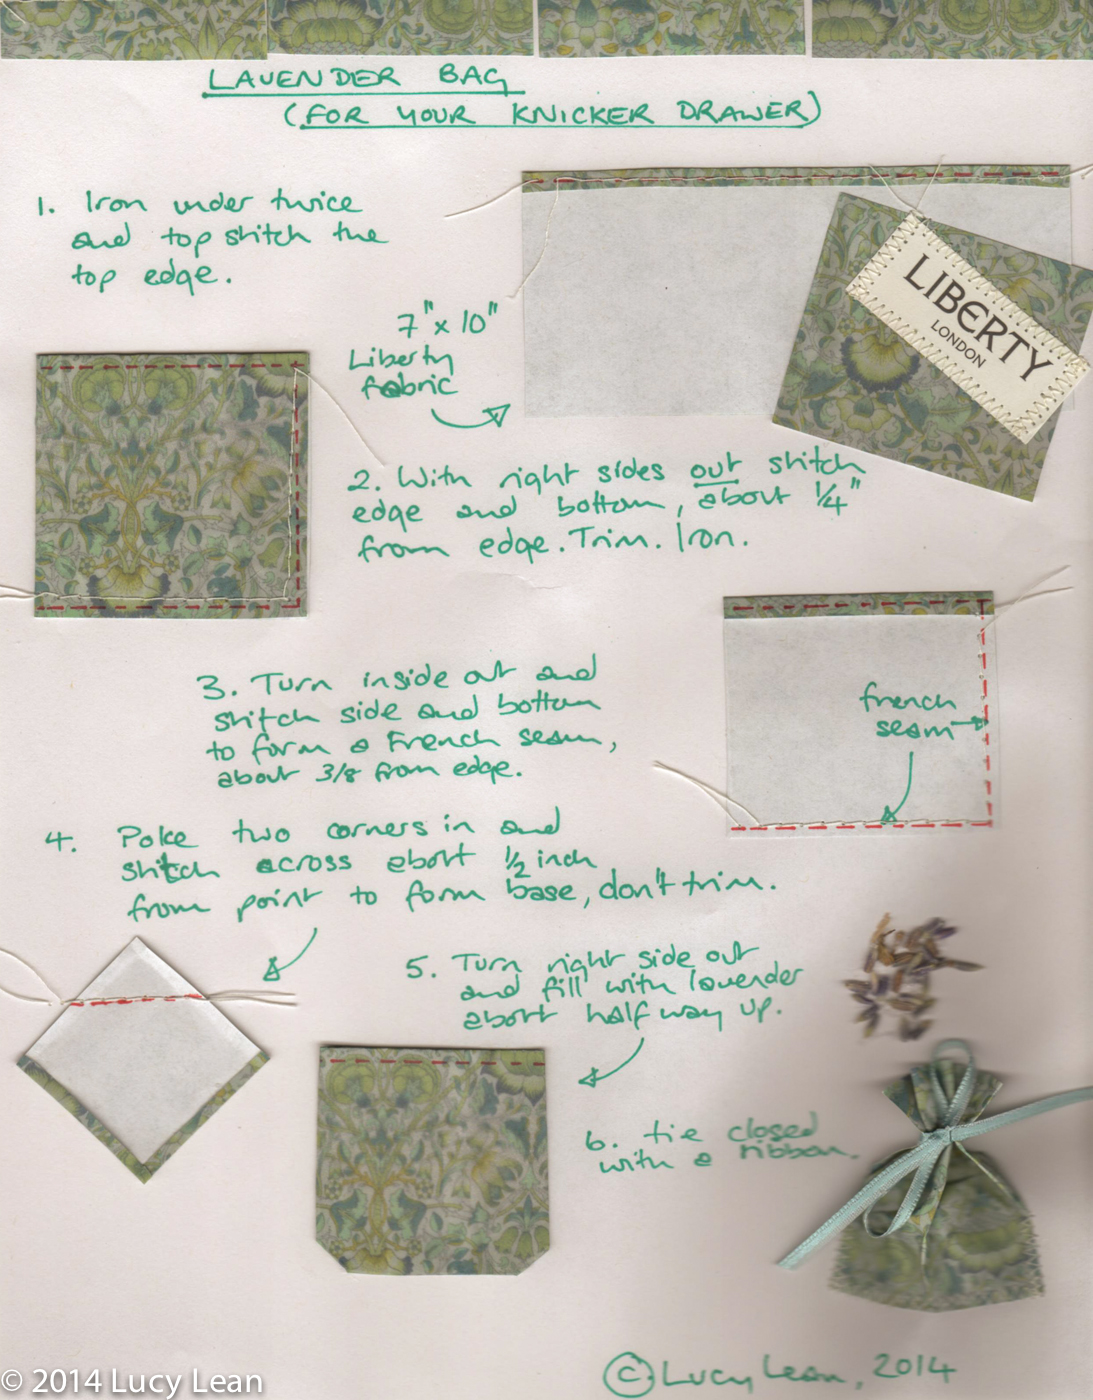 How to make Lavender Bag Instructions